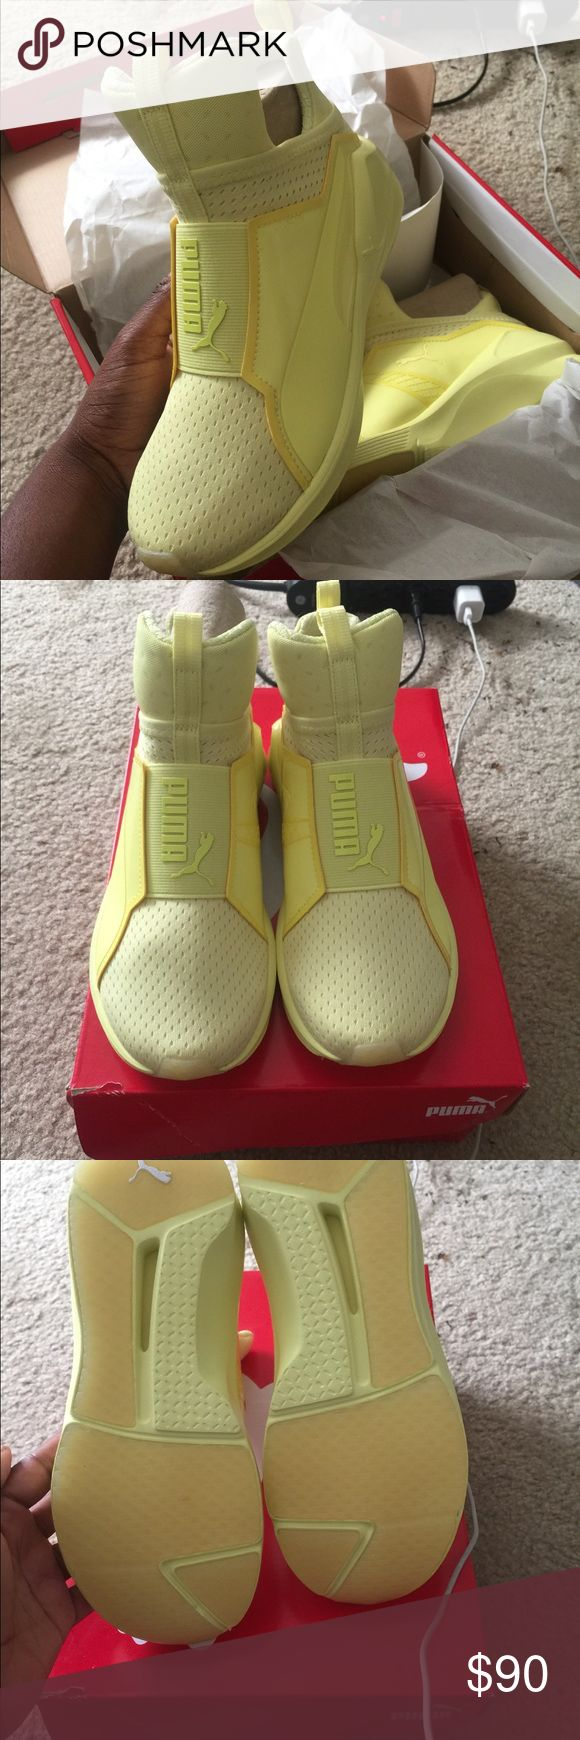 Rihanna puma runners Spring collection of Rihanna puma runners  - never worn had since march  - birthday present but I can't fit them at all - size 5.5 in ladies I wear a 5.5 in kids  RETAIL $120 Rihanna Shoes Athletic Shoes